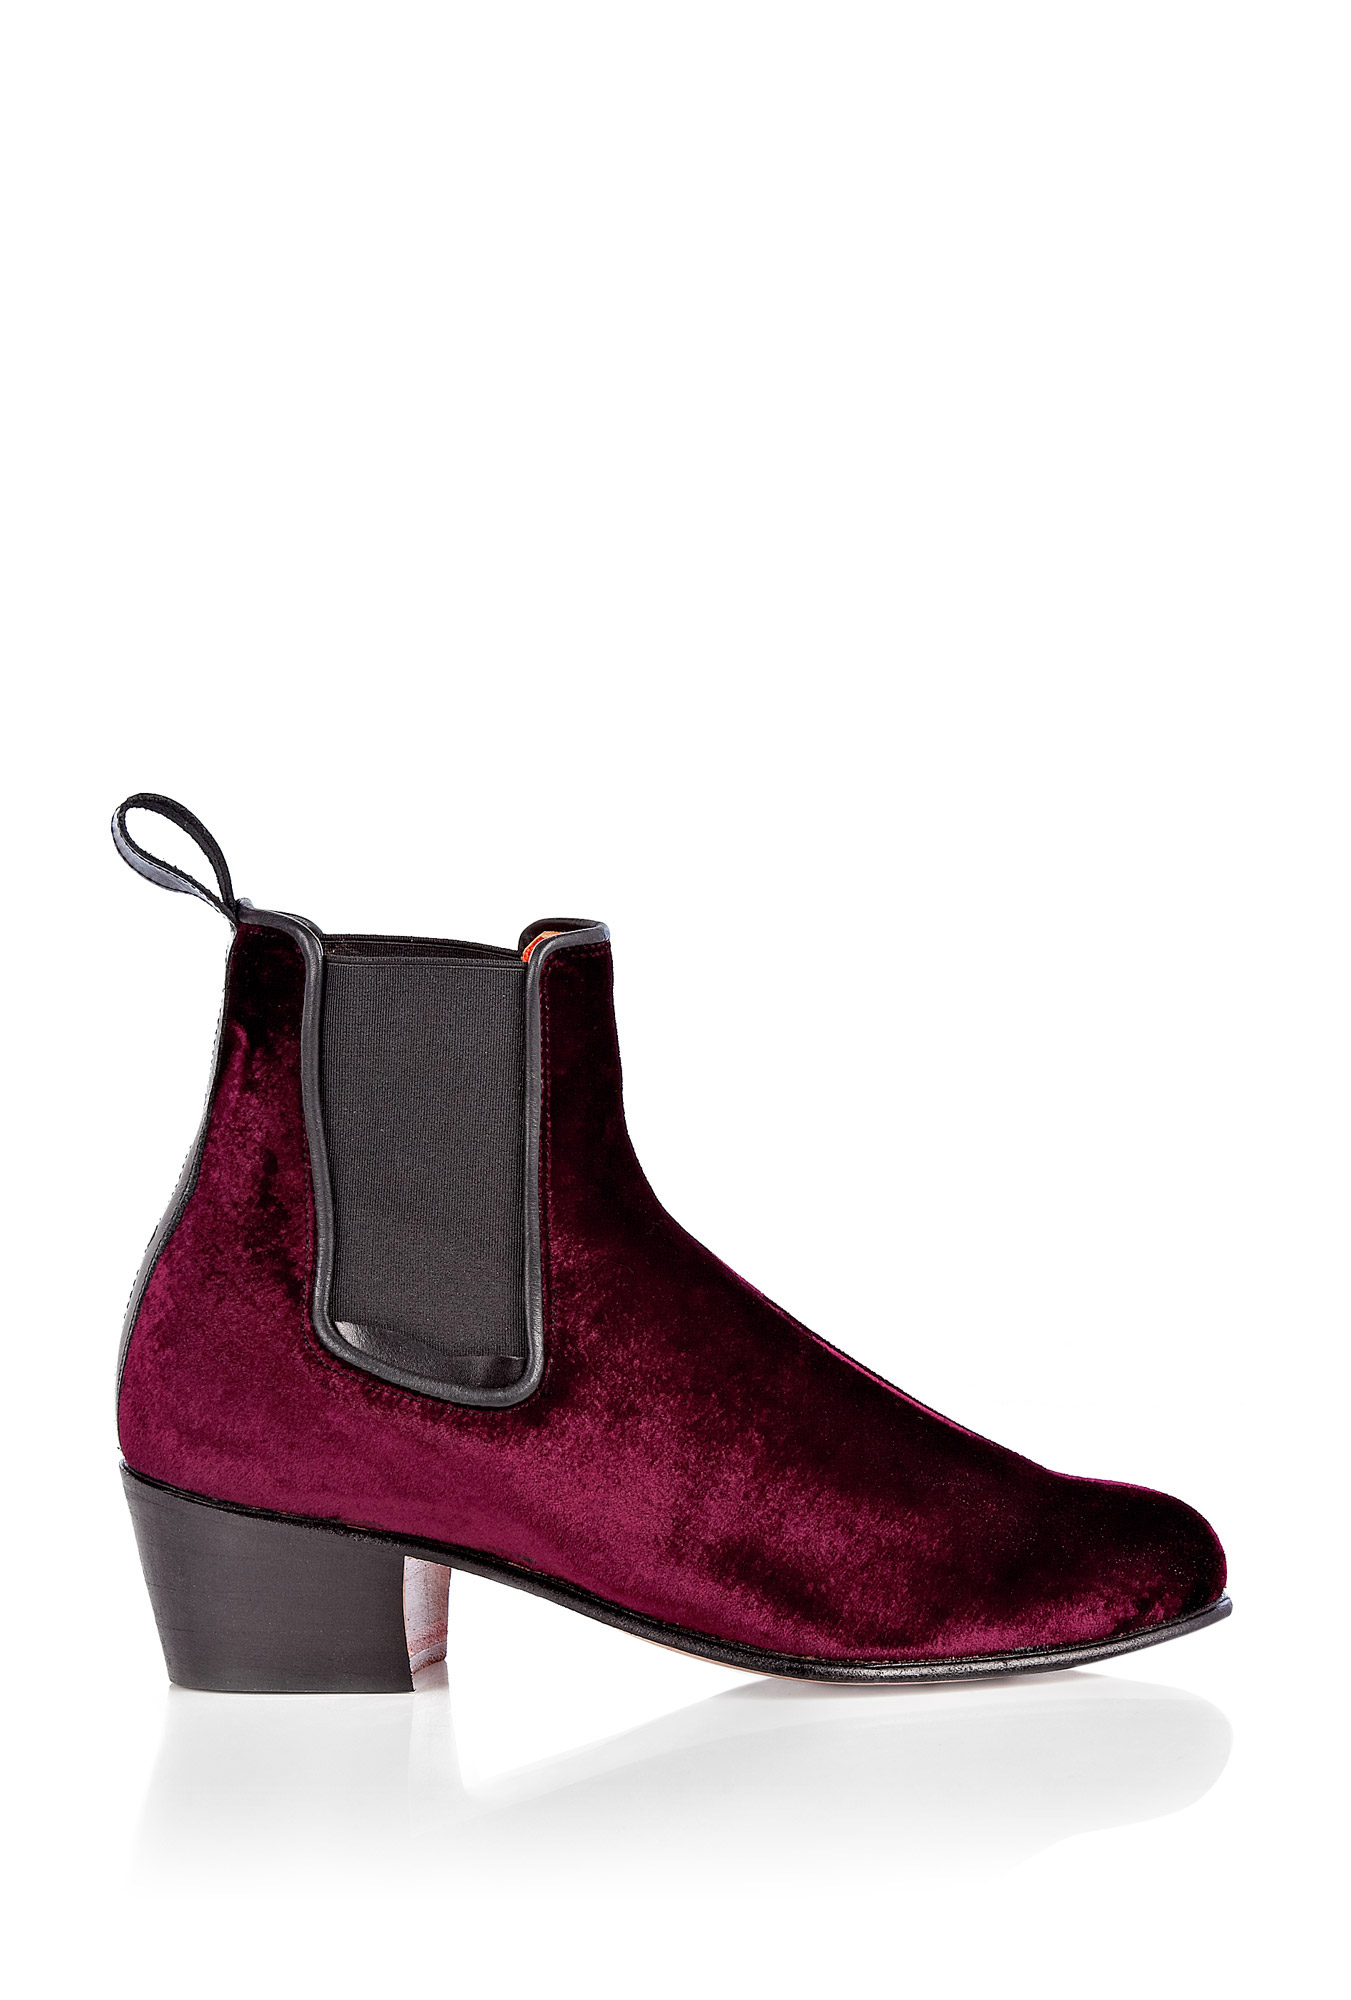 Penelope Chilvers | Red Cubana Velvet Ankle Boot by Penelope Chilvers